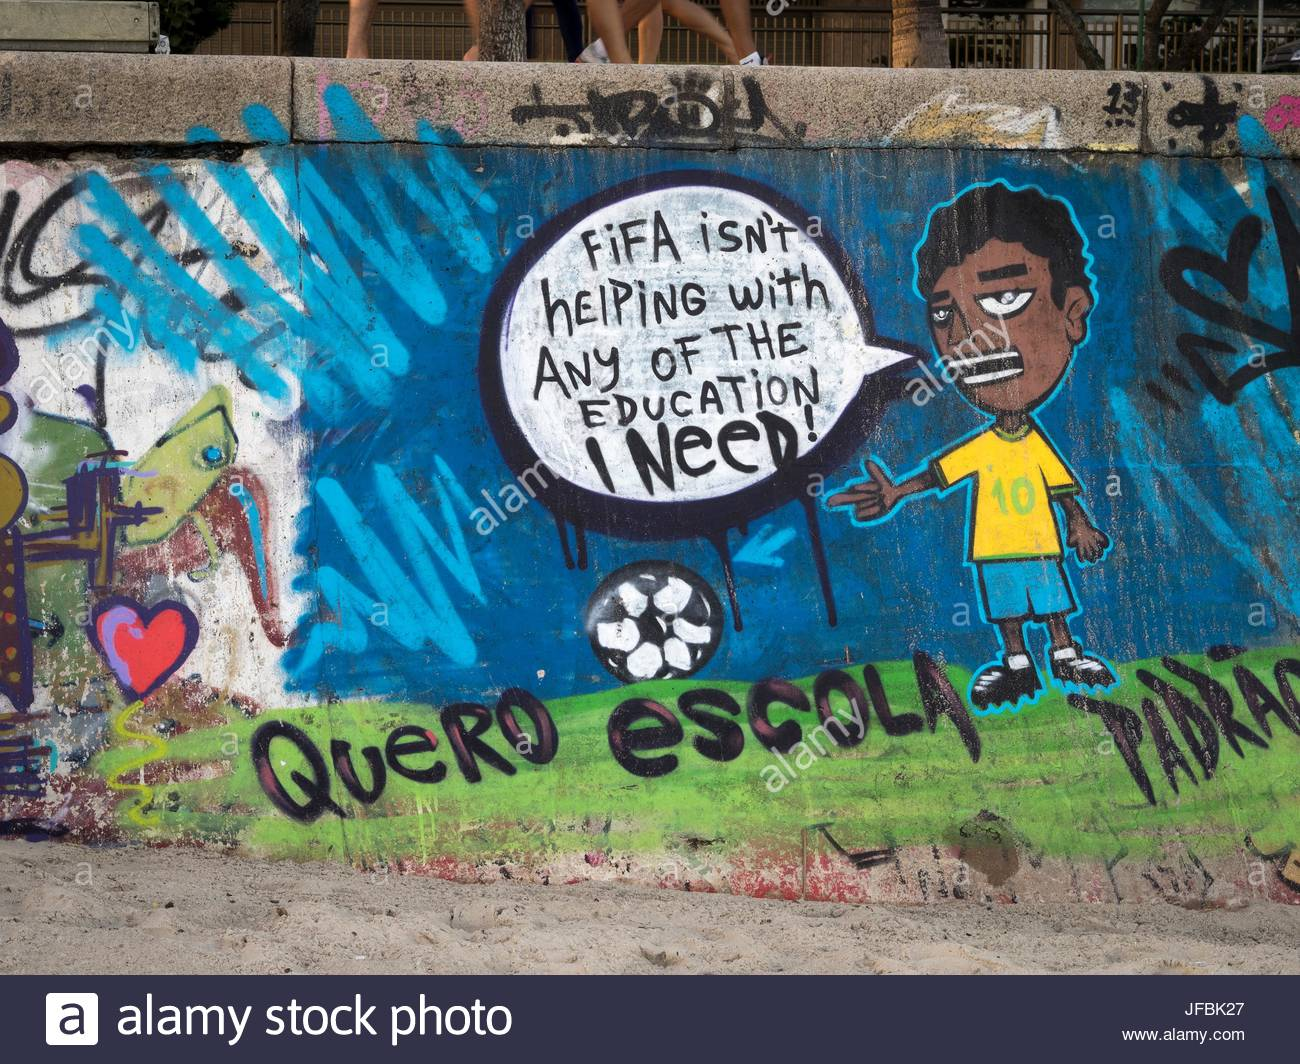 Graffiti protest against FIFA, The Federation Internationale de Football Association. - Stock Image